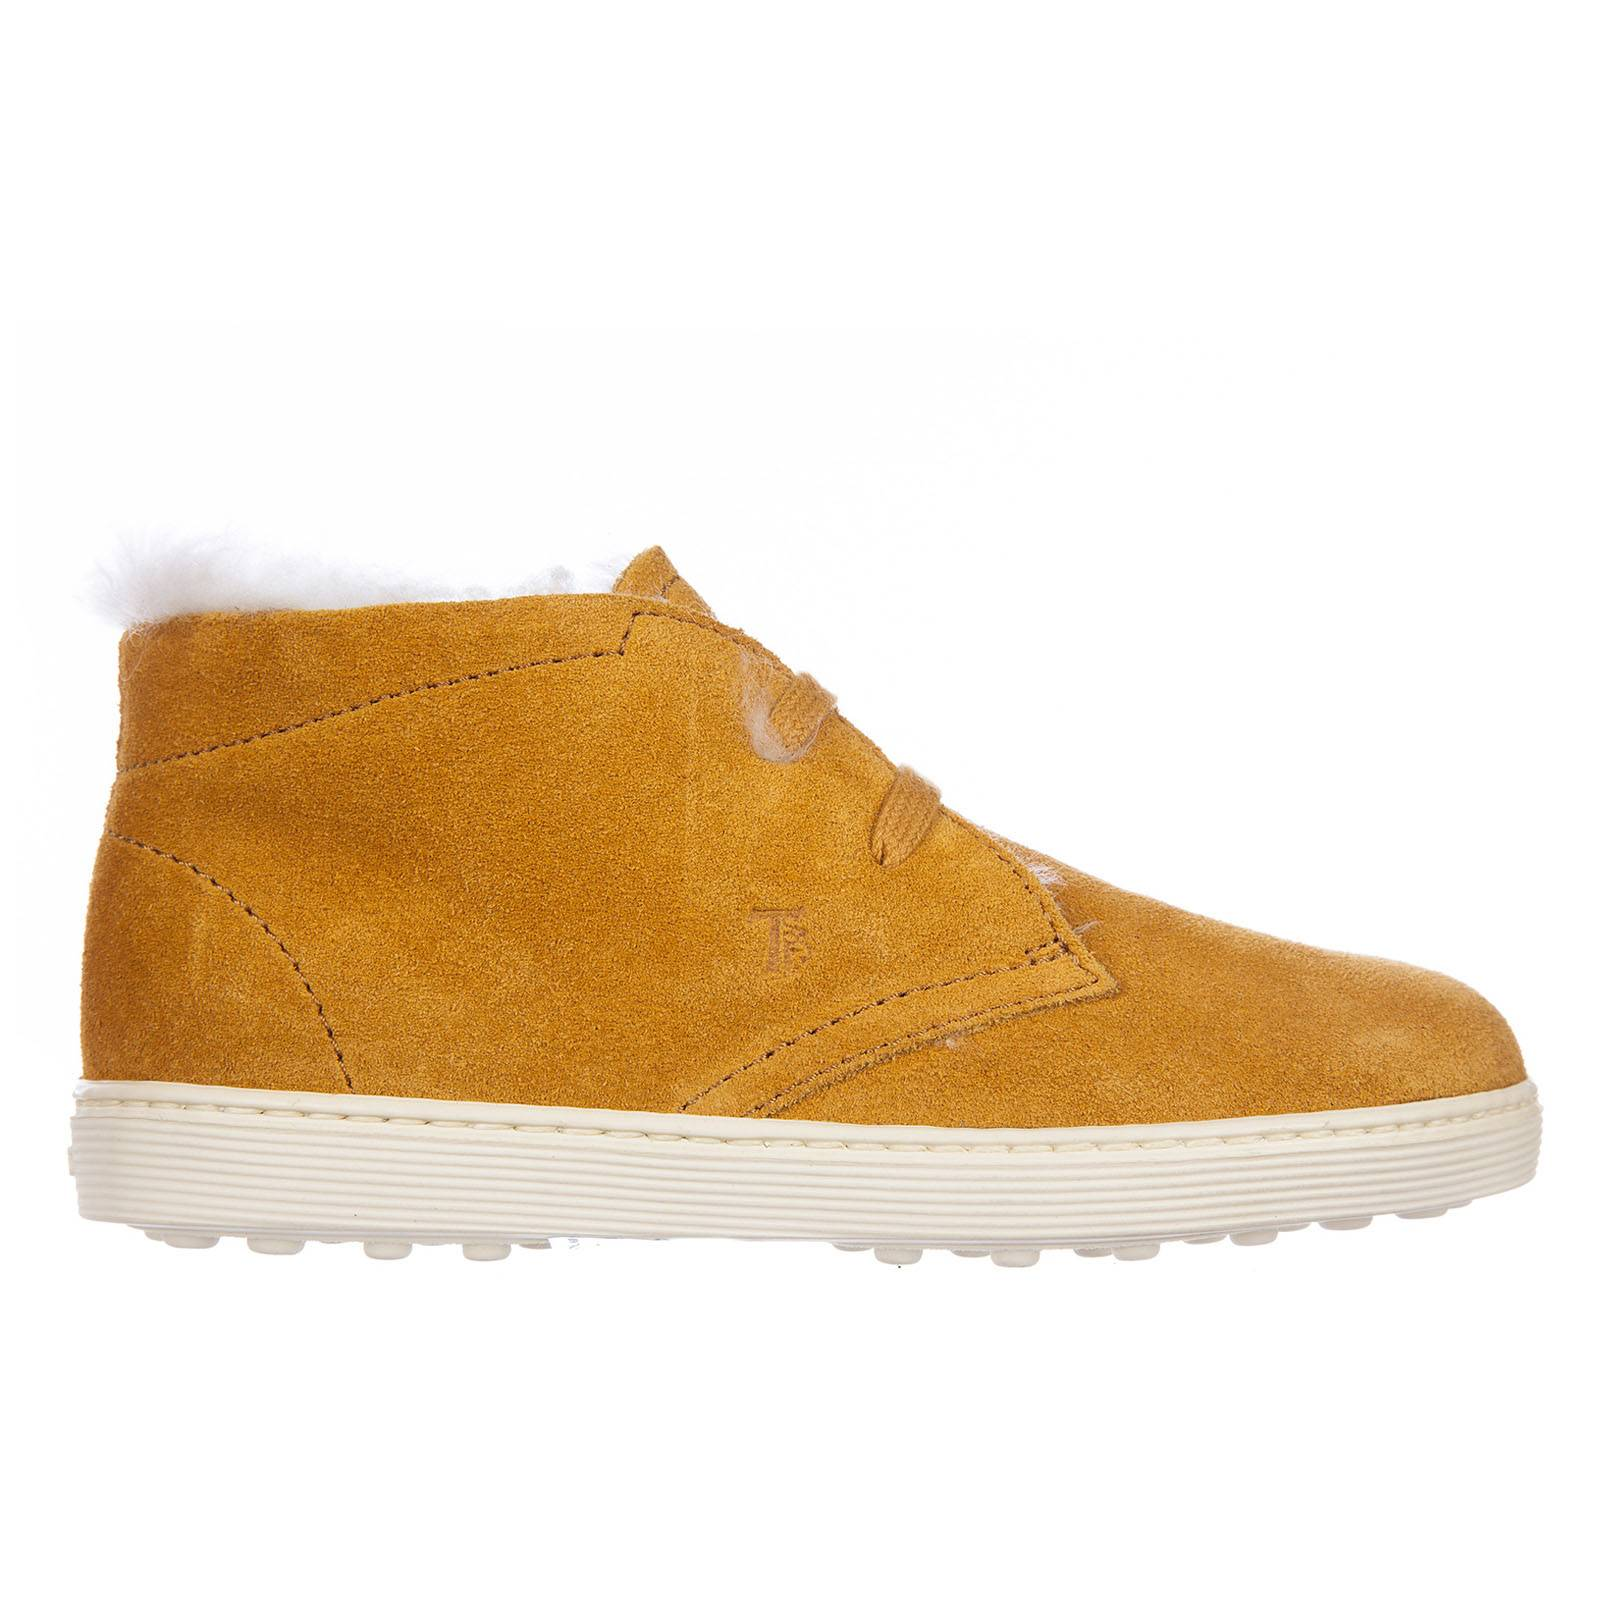 Tod's Boys suede leather child desert boots ankle boots sport cassetta  - Yellow - Size: 23